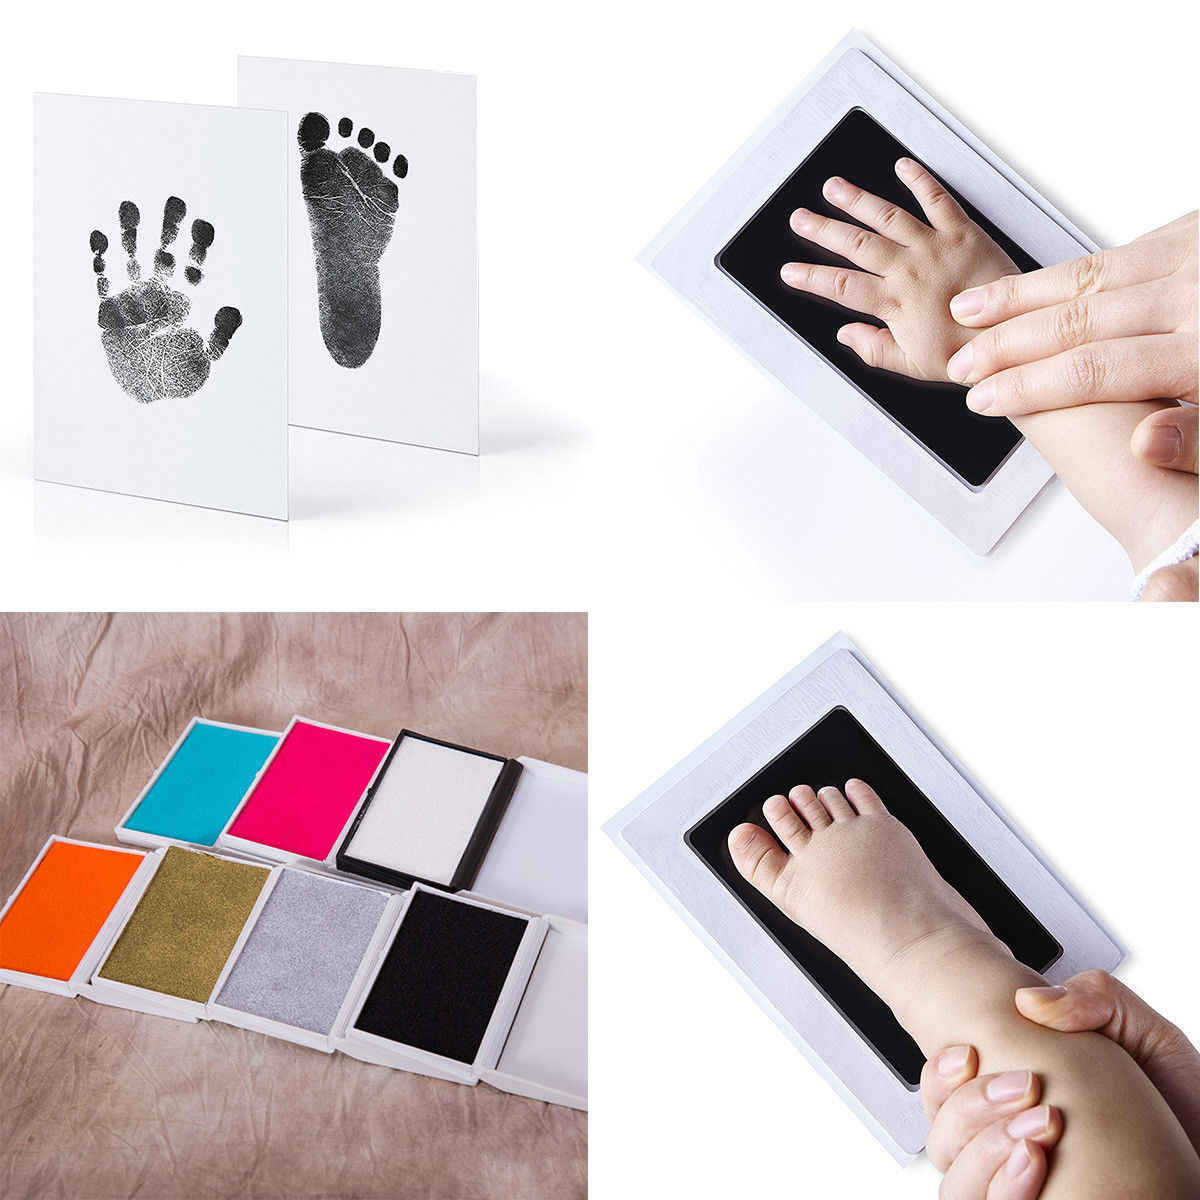 Non Toxic and Safe Print for Baby and Pet to Make Newborn Baby Hand or Footprint Family Keepsake,Blue Baby Handprint//Footprint Ink Pad